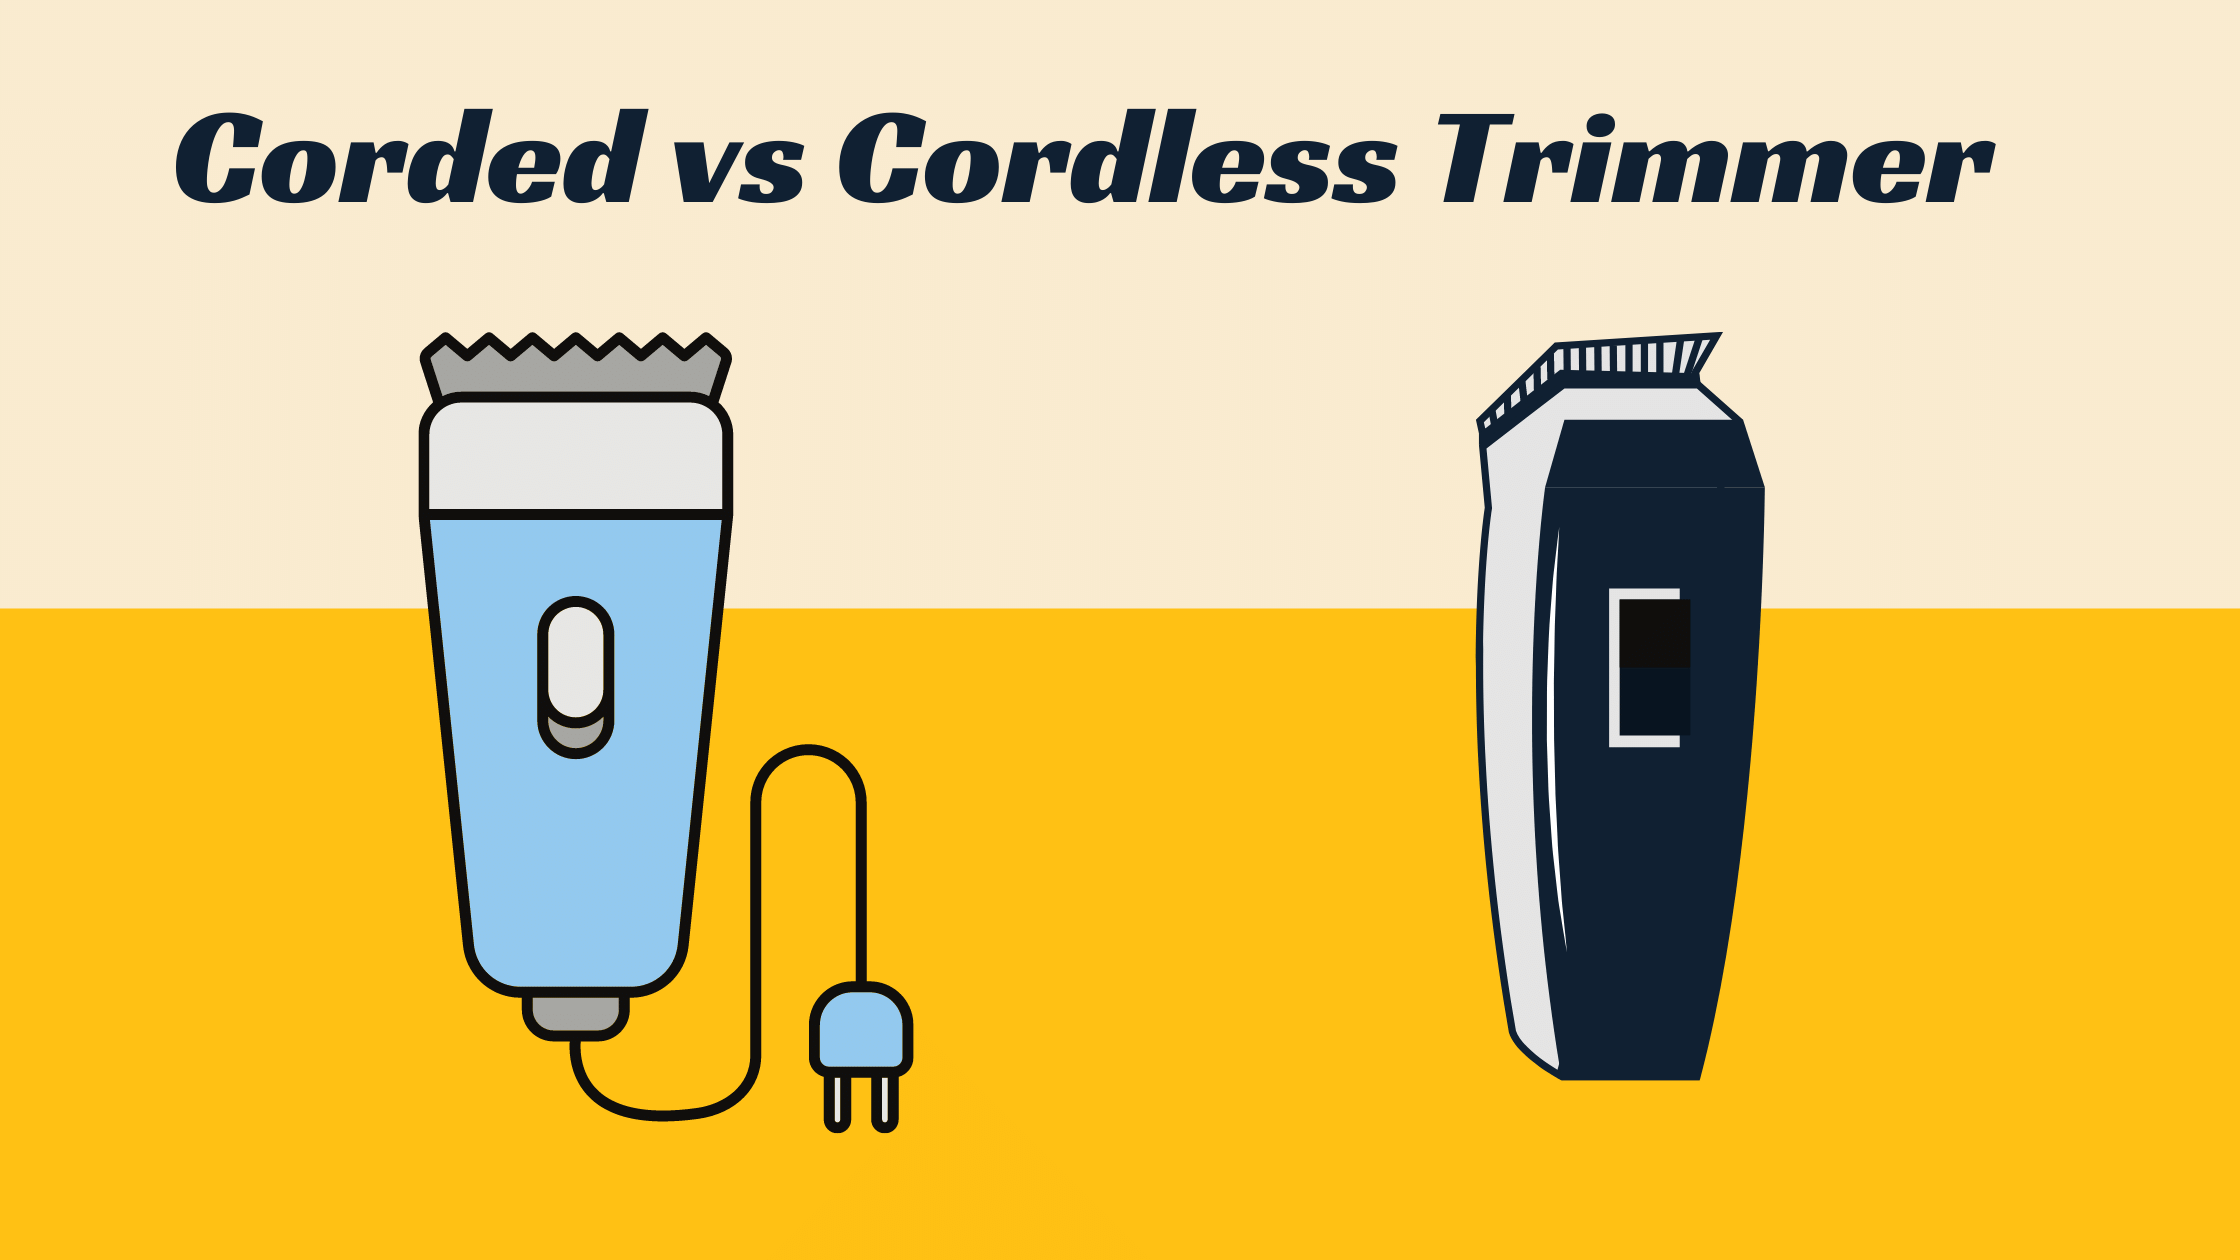 Corded or Cordless Trimmer